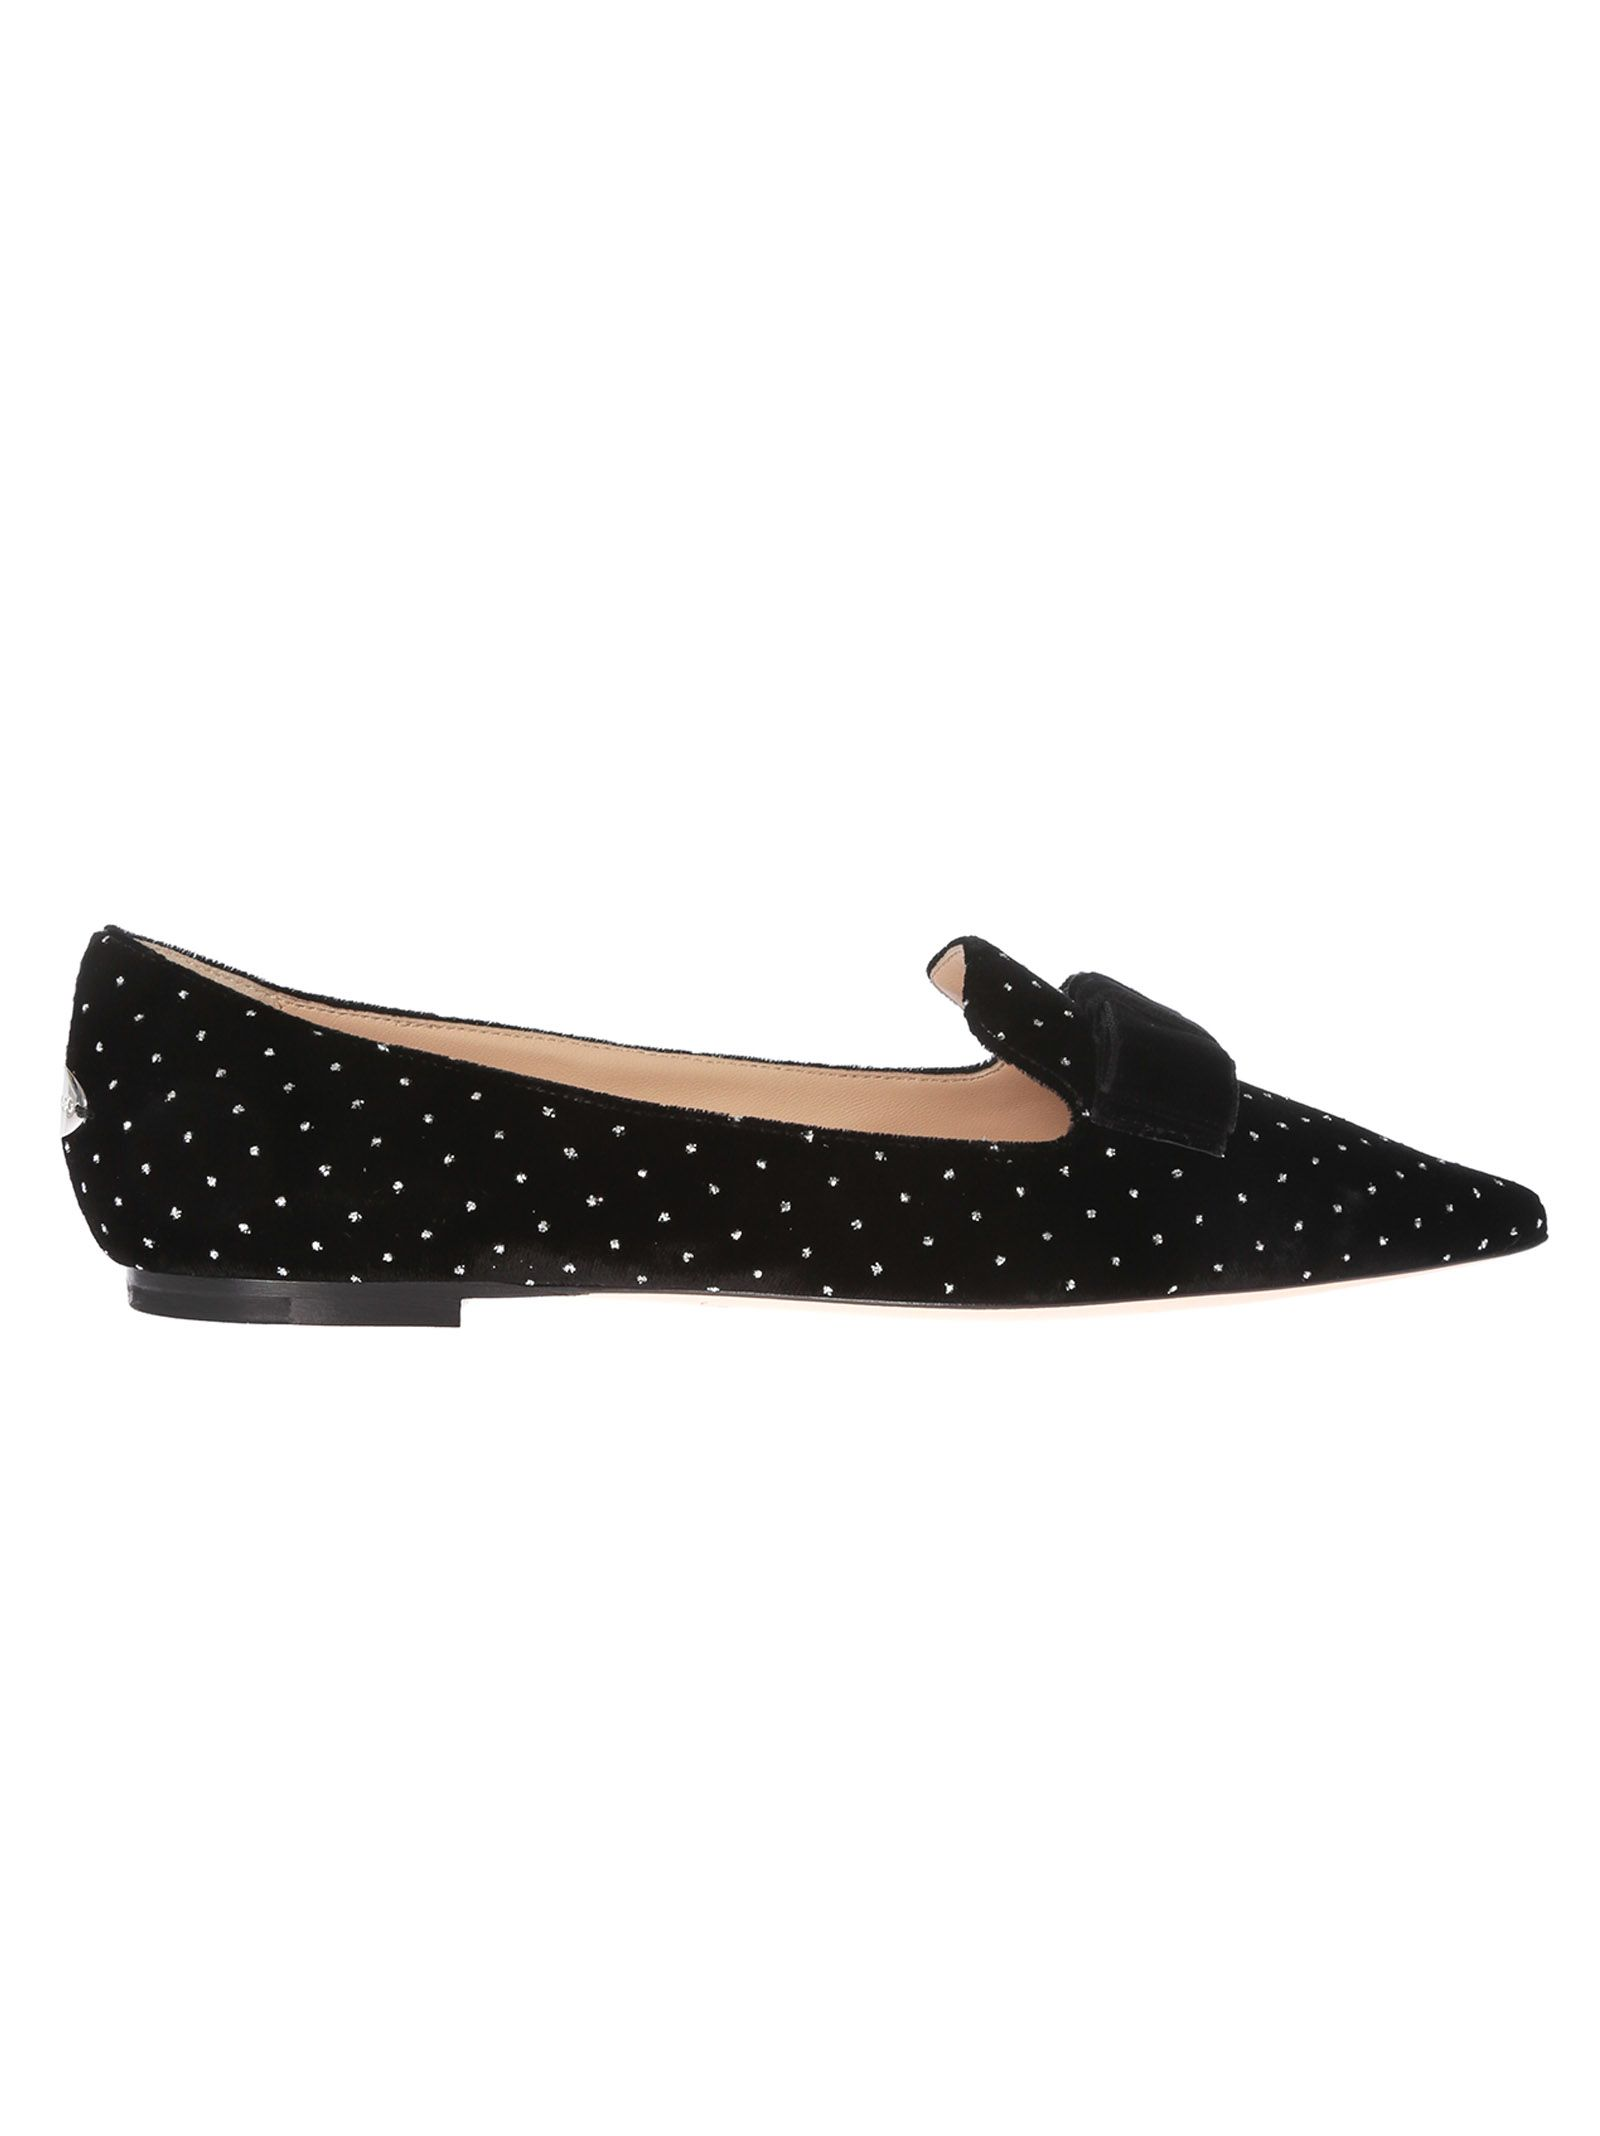 GALA STUDDED EMBELLISHED SLIPPERS